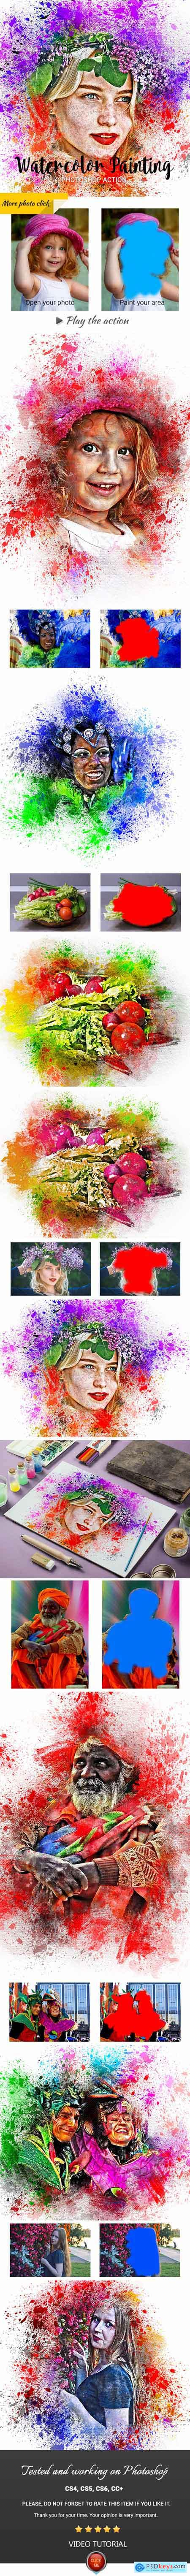 Watercolor Painting Photoshop Action 24202737